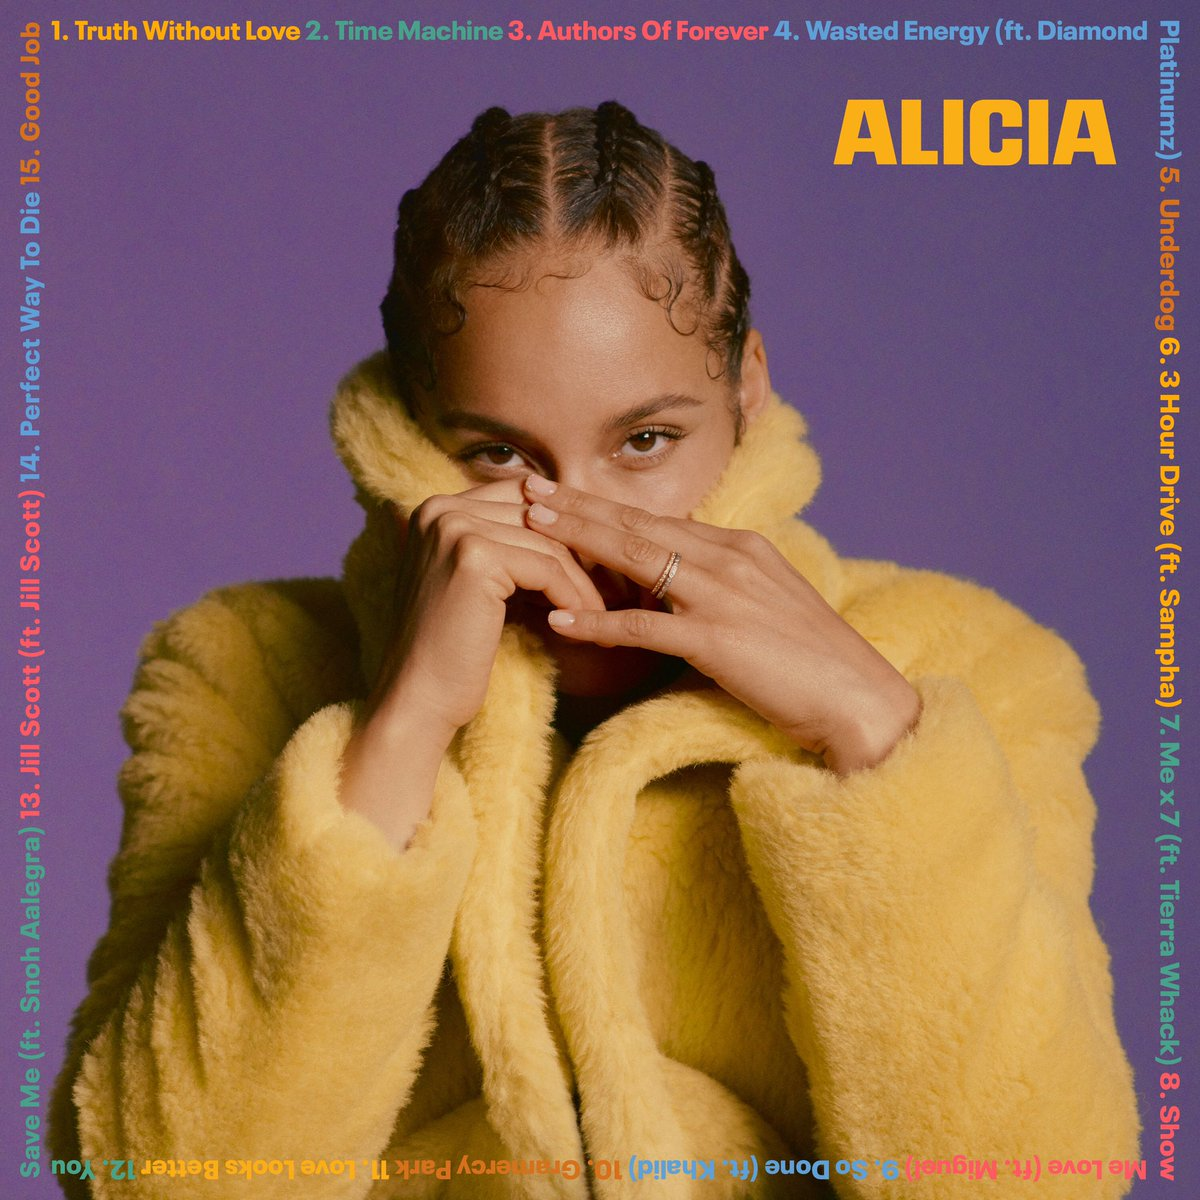 #Alicia just dropped! The voice, the vibe, the piano. Fav track... LOVE LOOKS BETTER